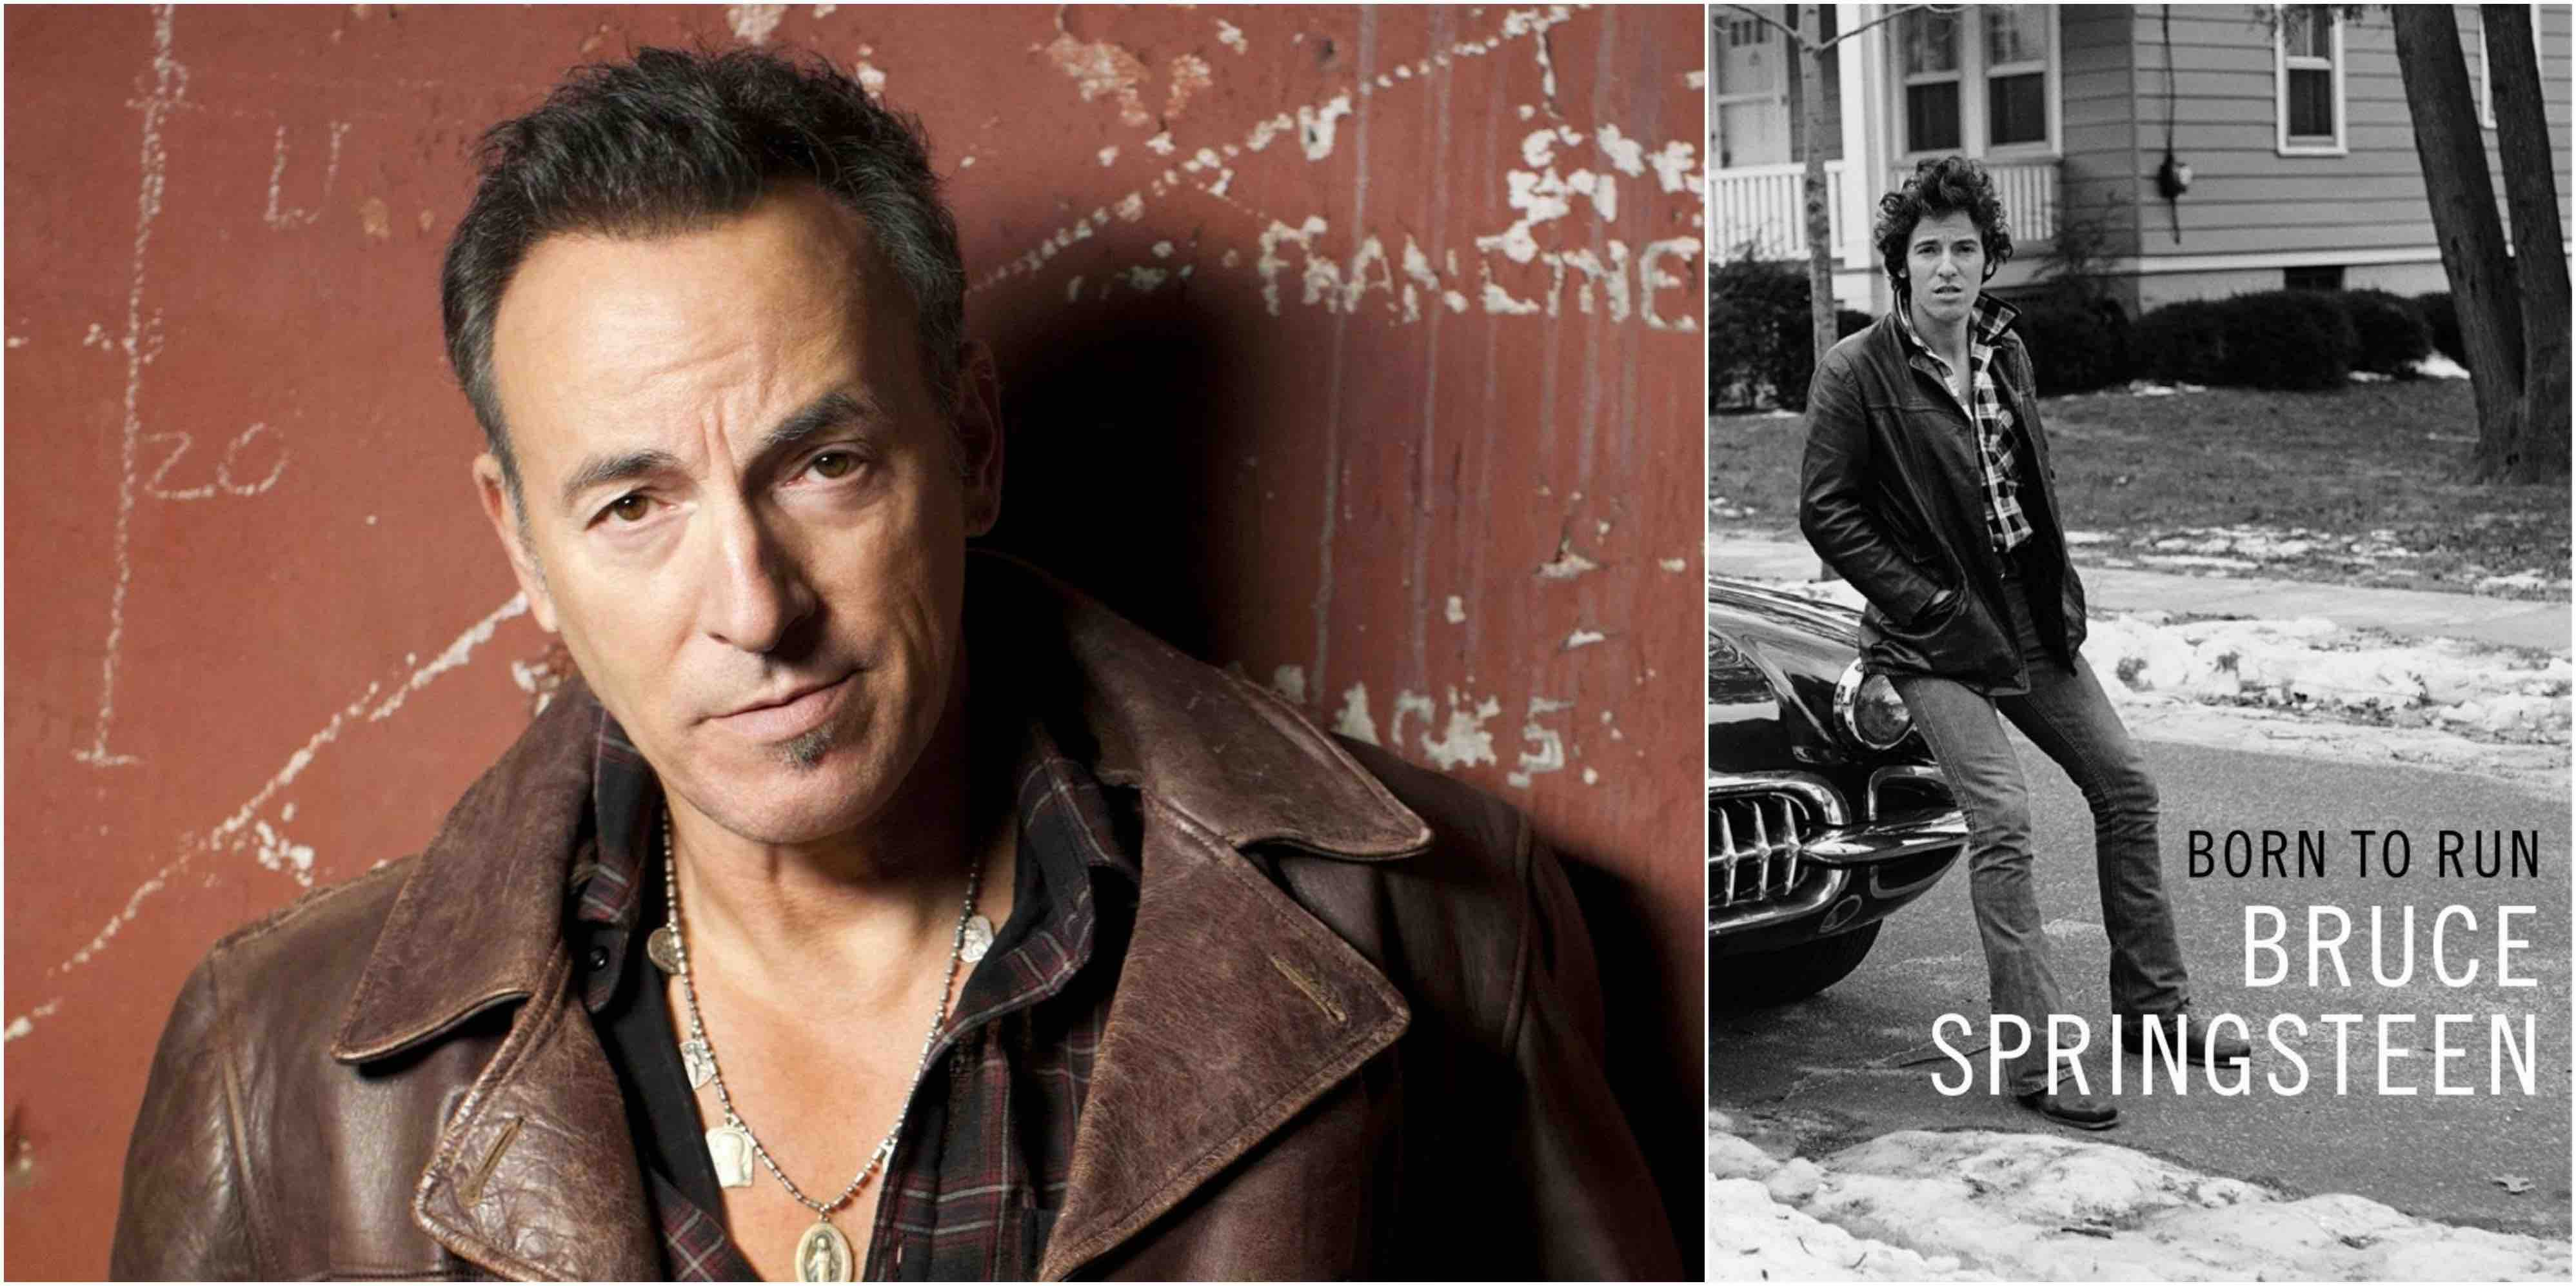 Born to Run prima autobiografia di Bruce Springsteen